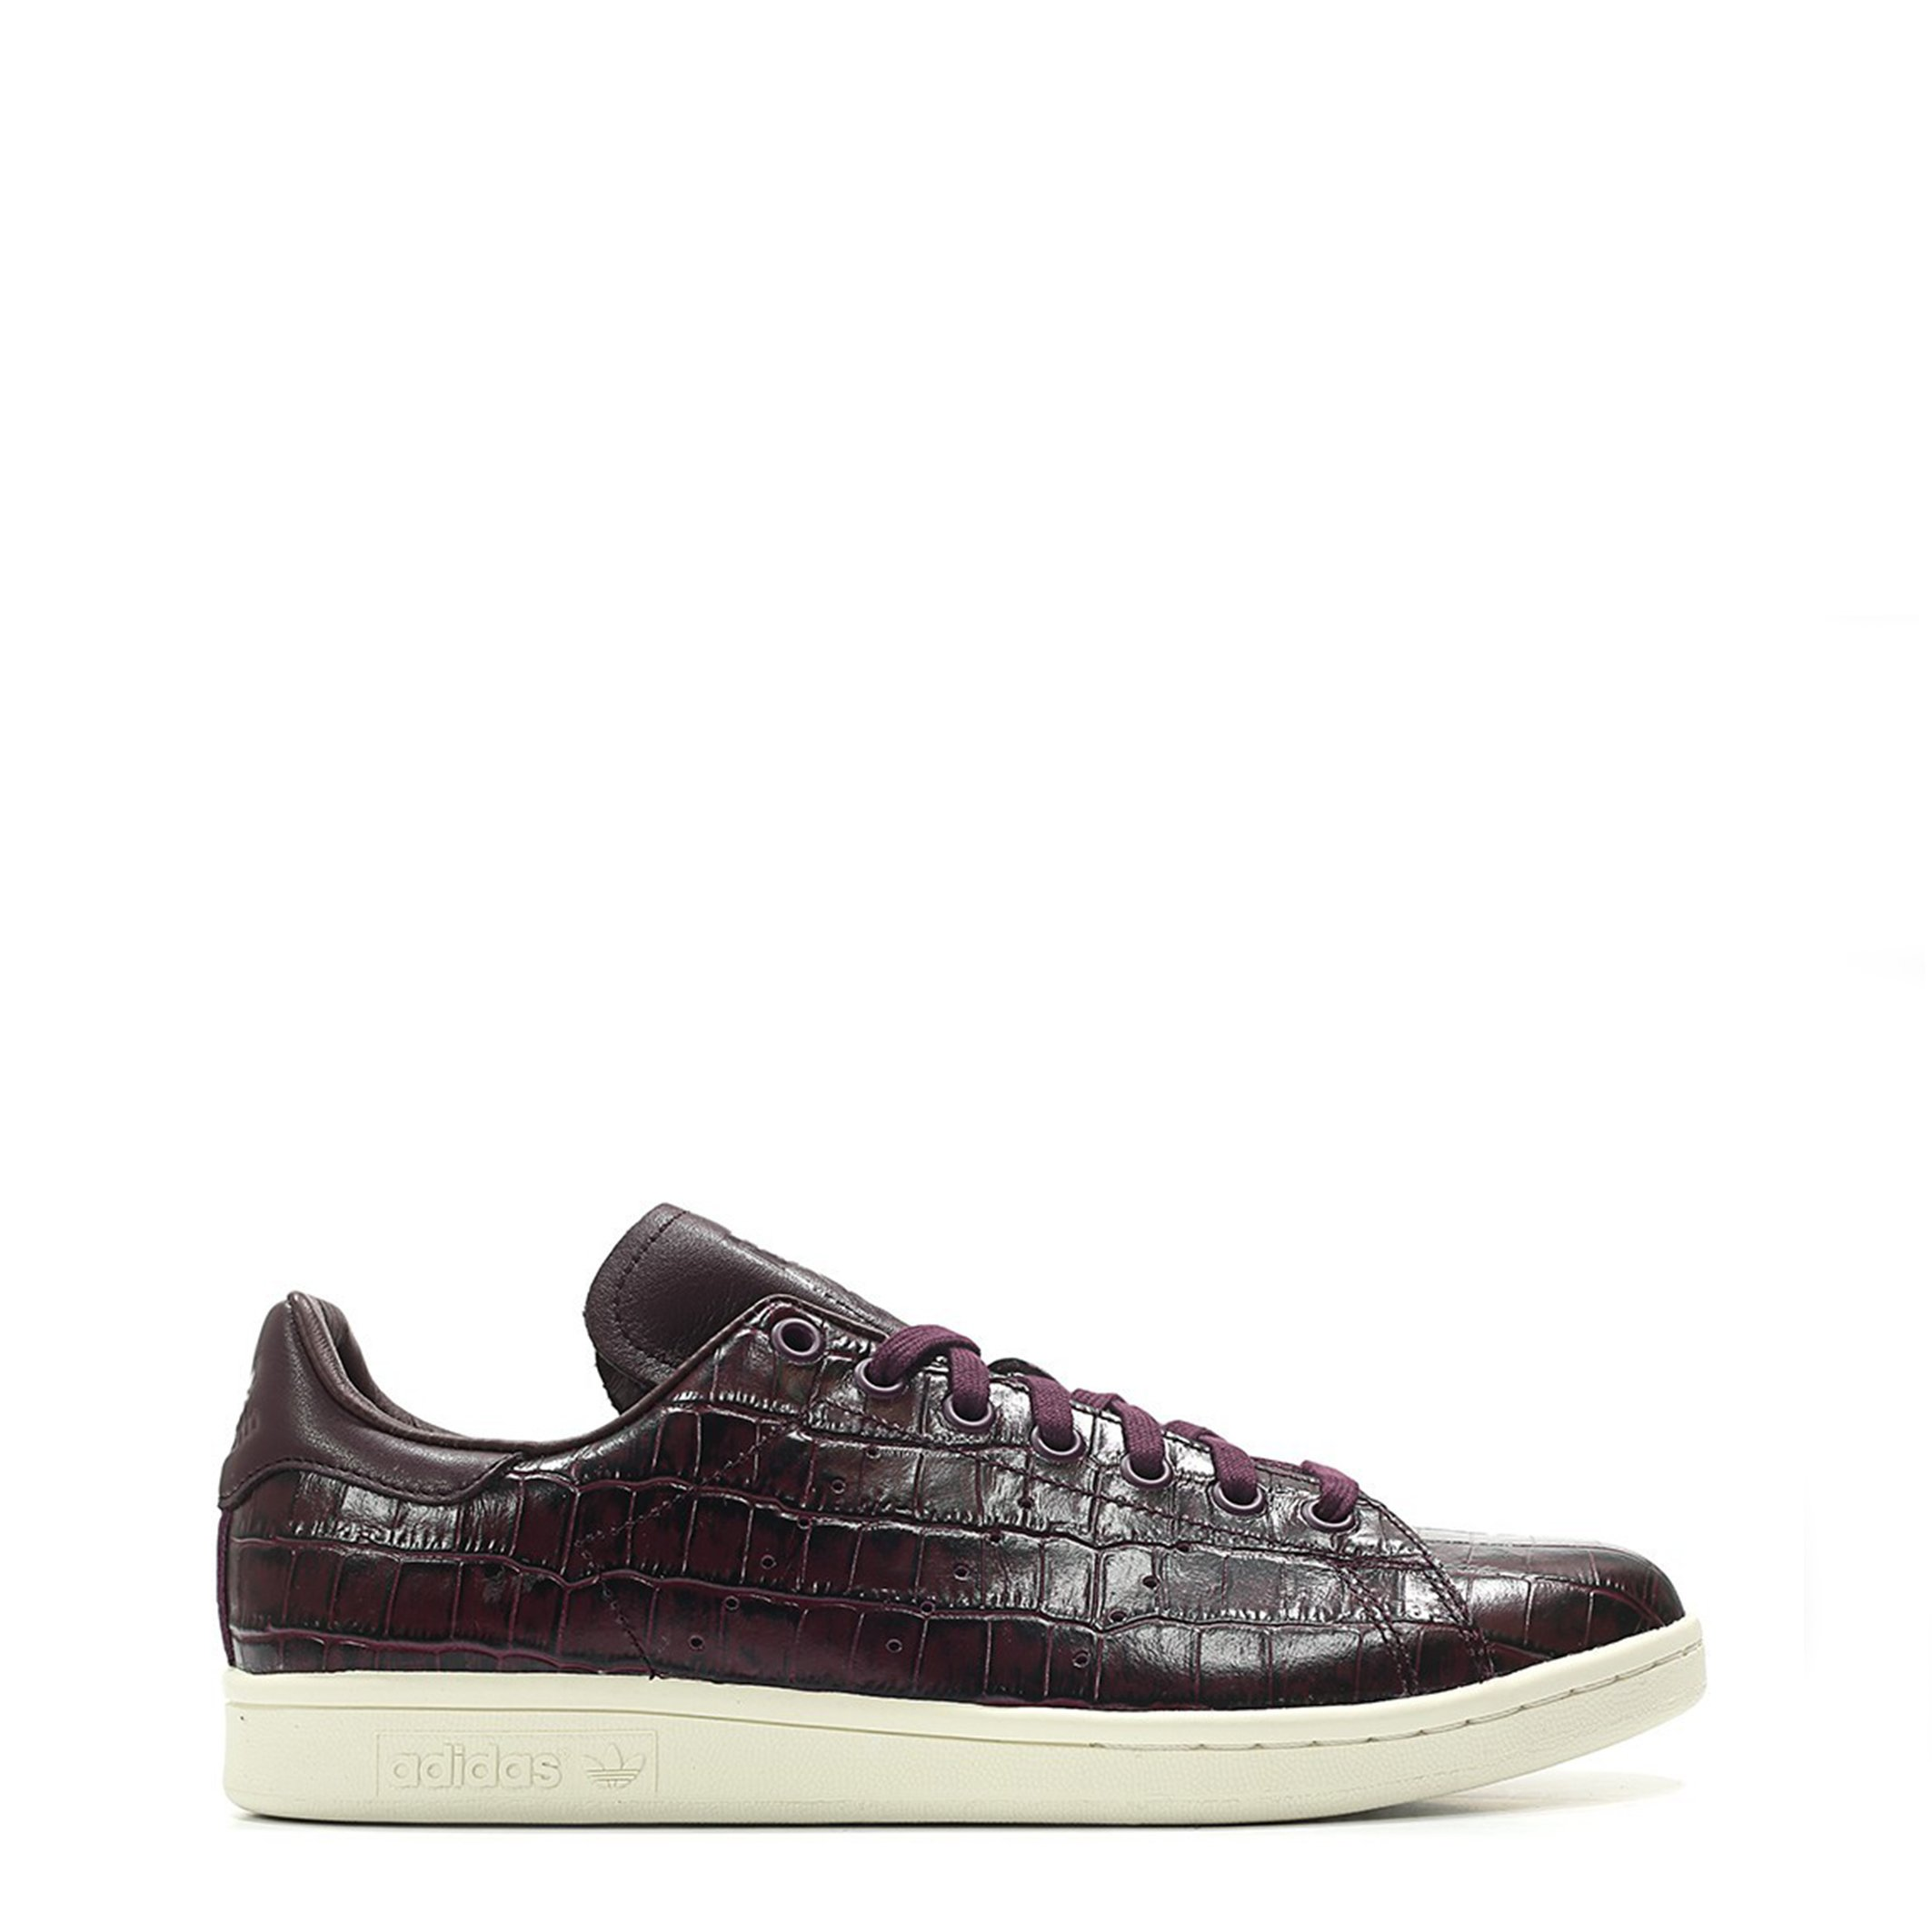 Adidas Unisex Stan Smith Trainers Various Colours - violet 3.5 UK